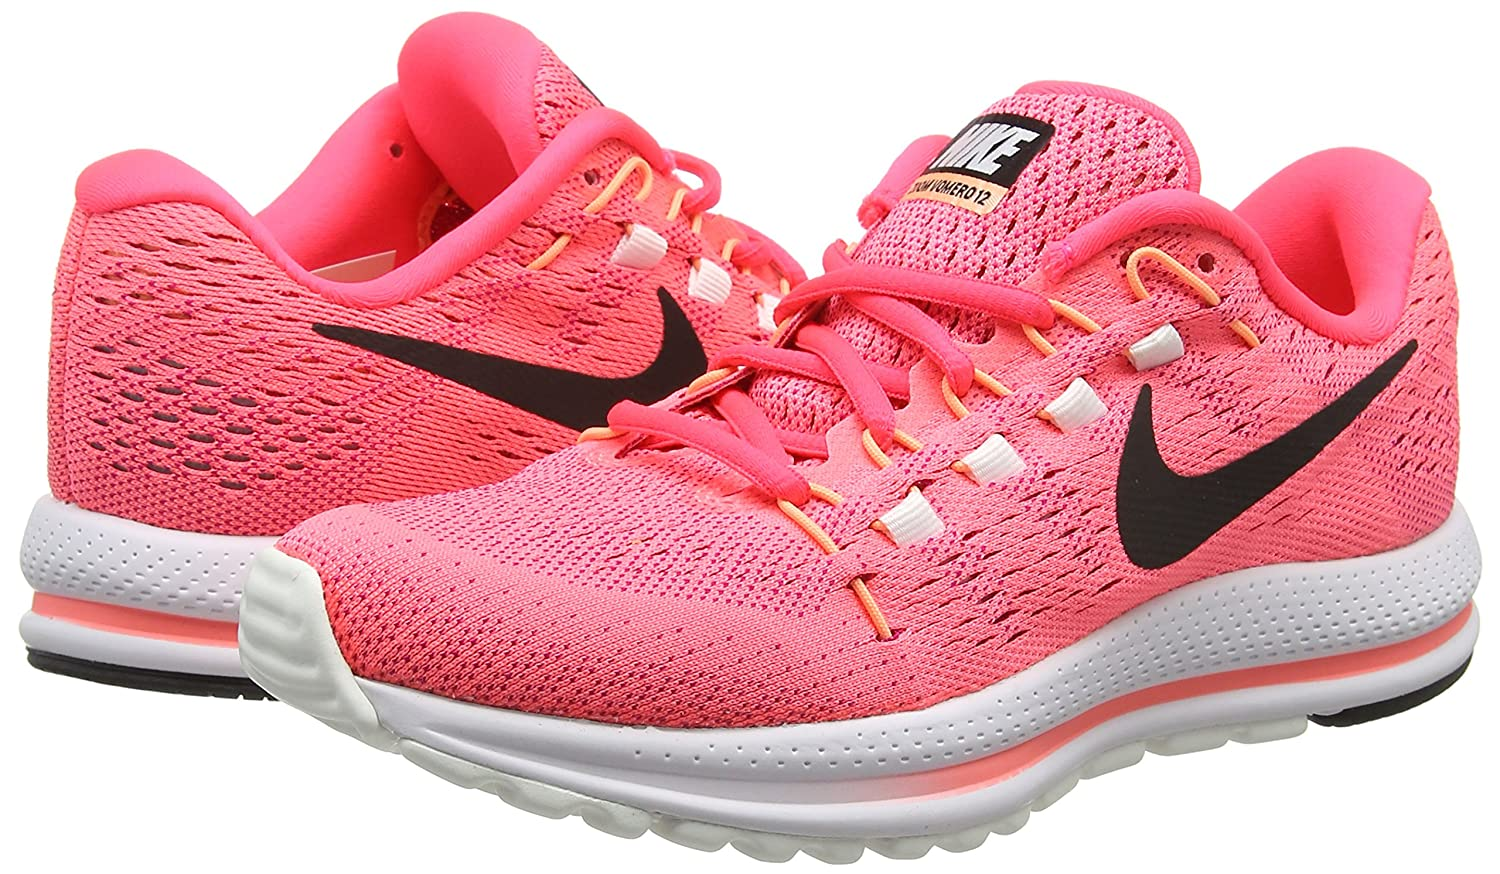 Nike Air Zoom Vomero 12 Womens Running Shoes